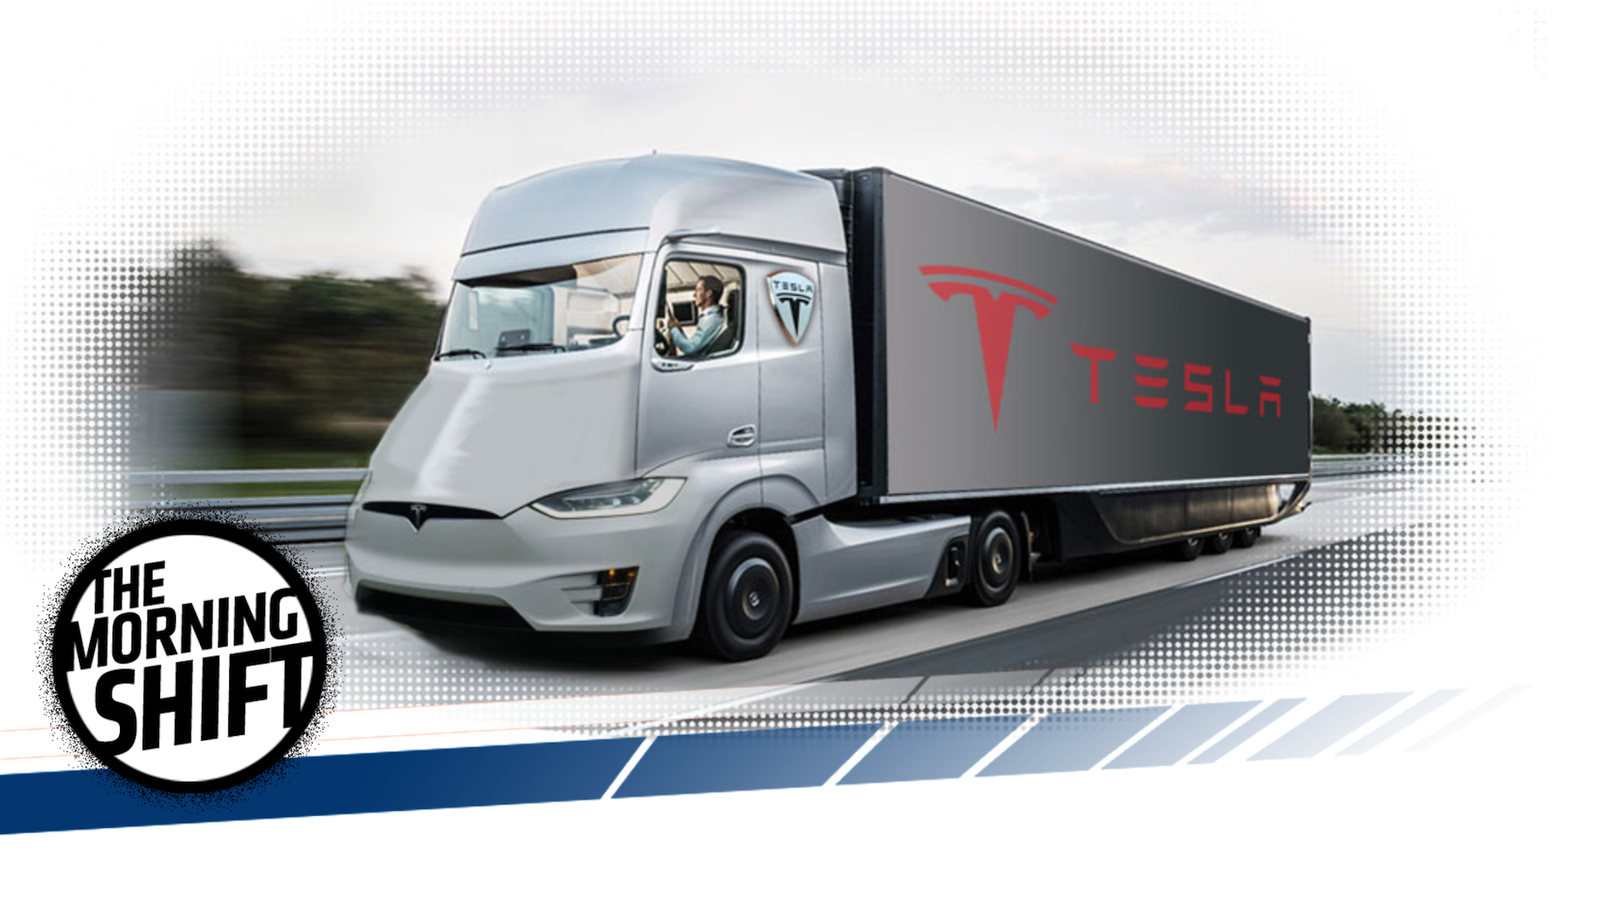 Tesla's Electric Big Rig Is Still No Match For Dirty Diesel Trucks: Report